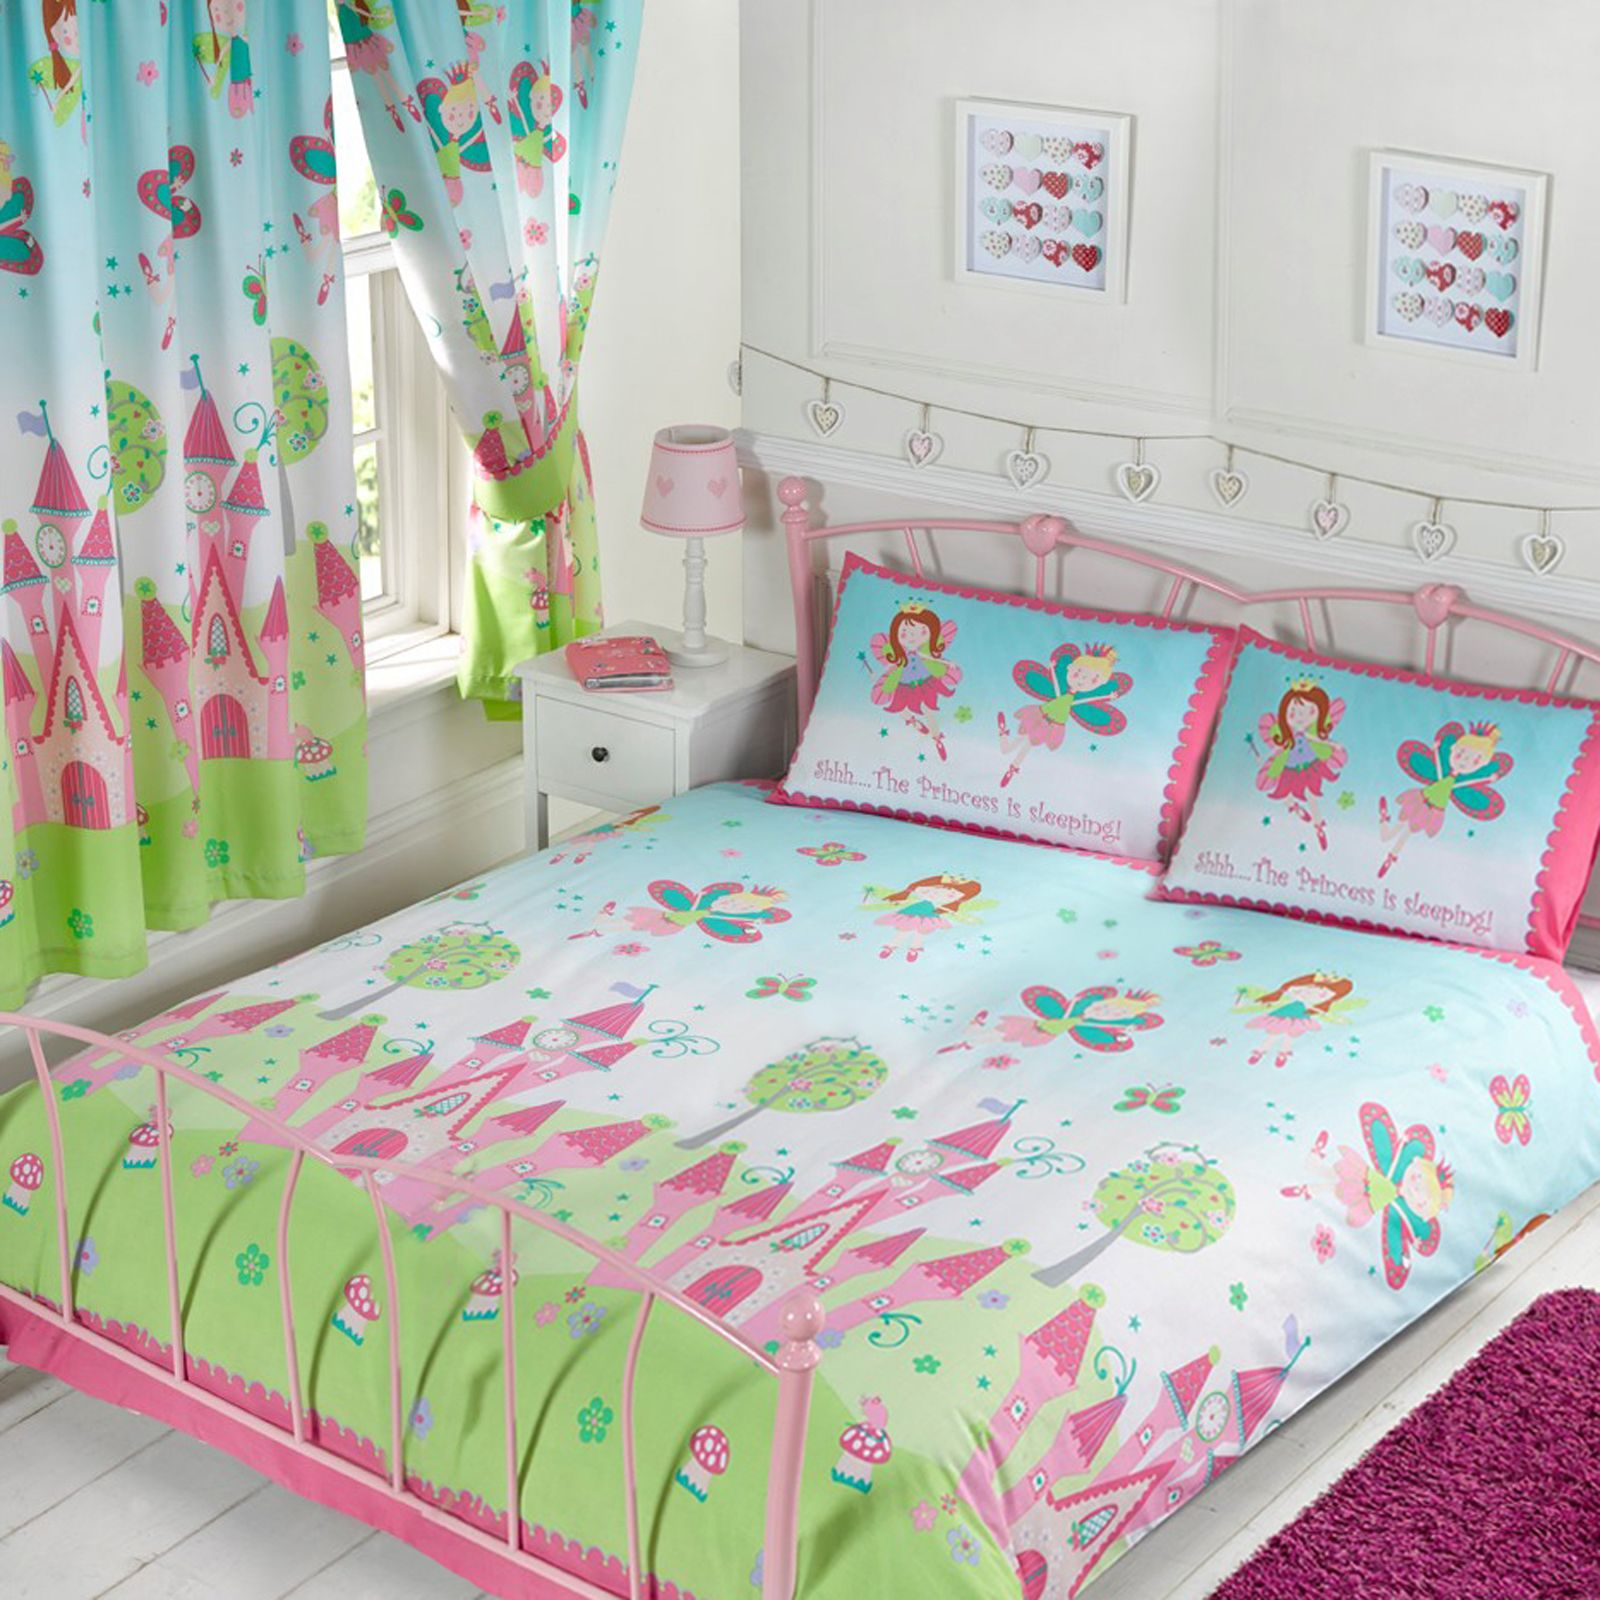 Kids Bedding. Buy home & garden online at George. Shop from our latest Home & Garden range. Fantastic quality, style and value.